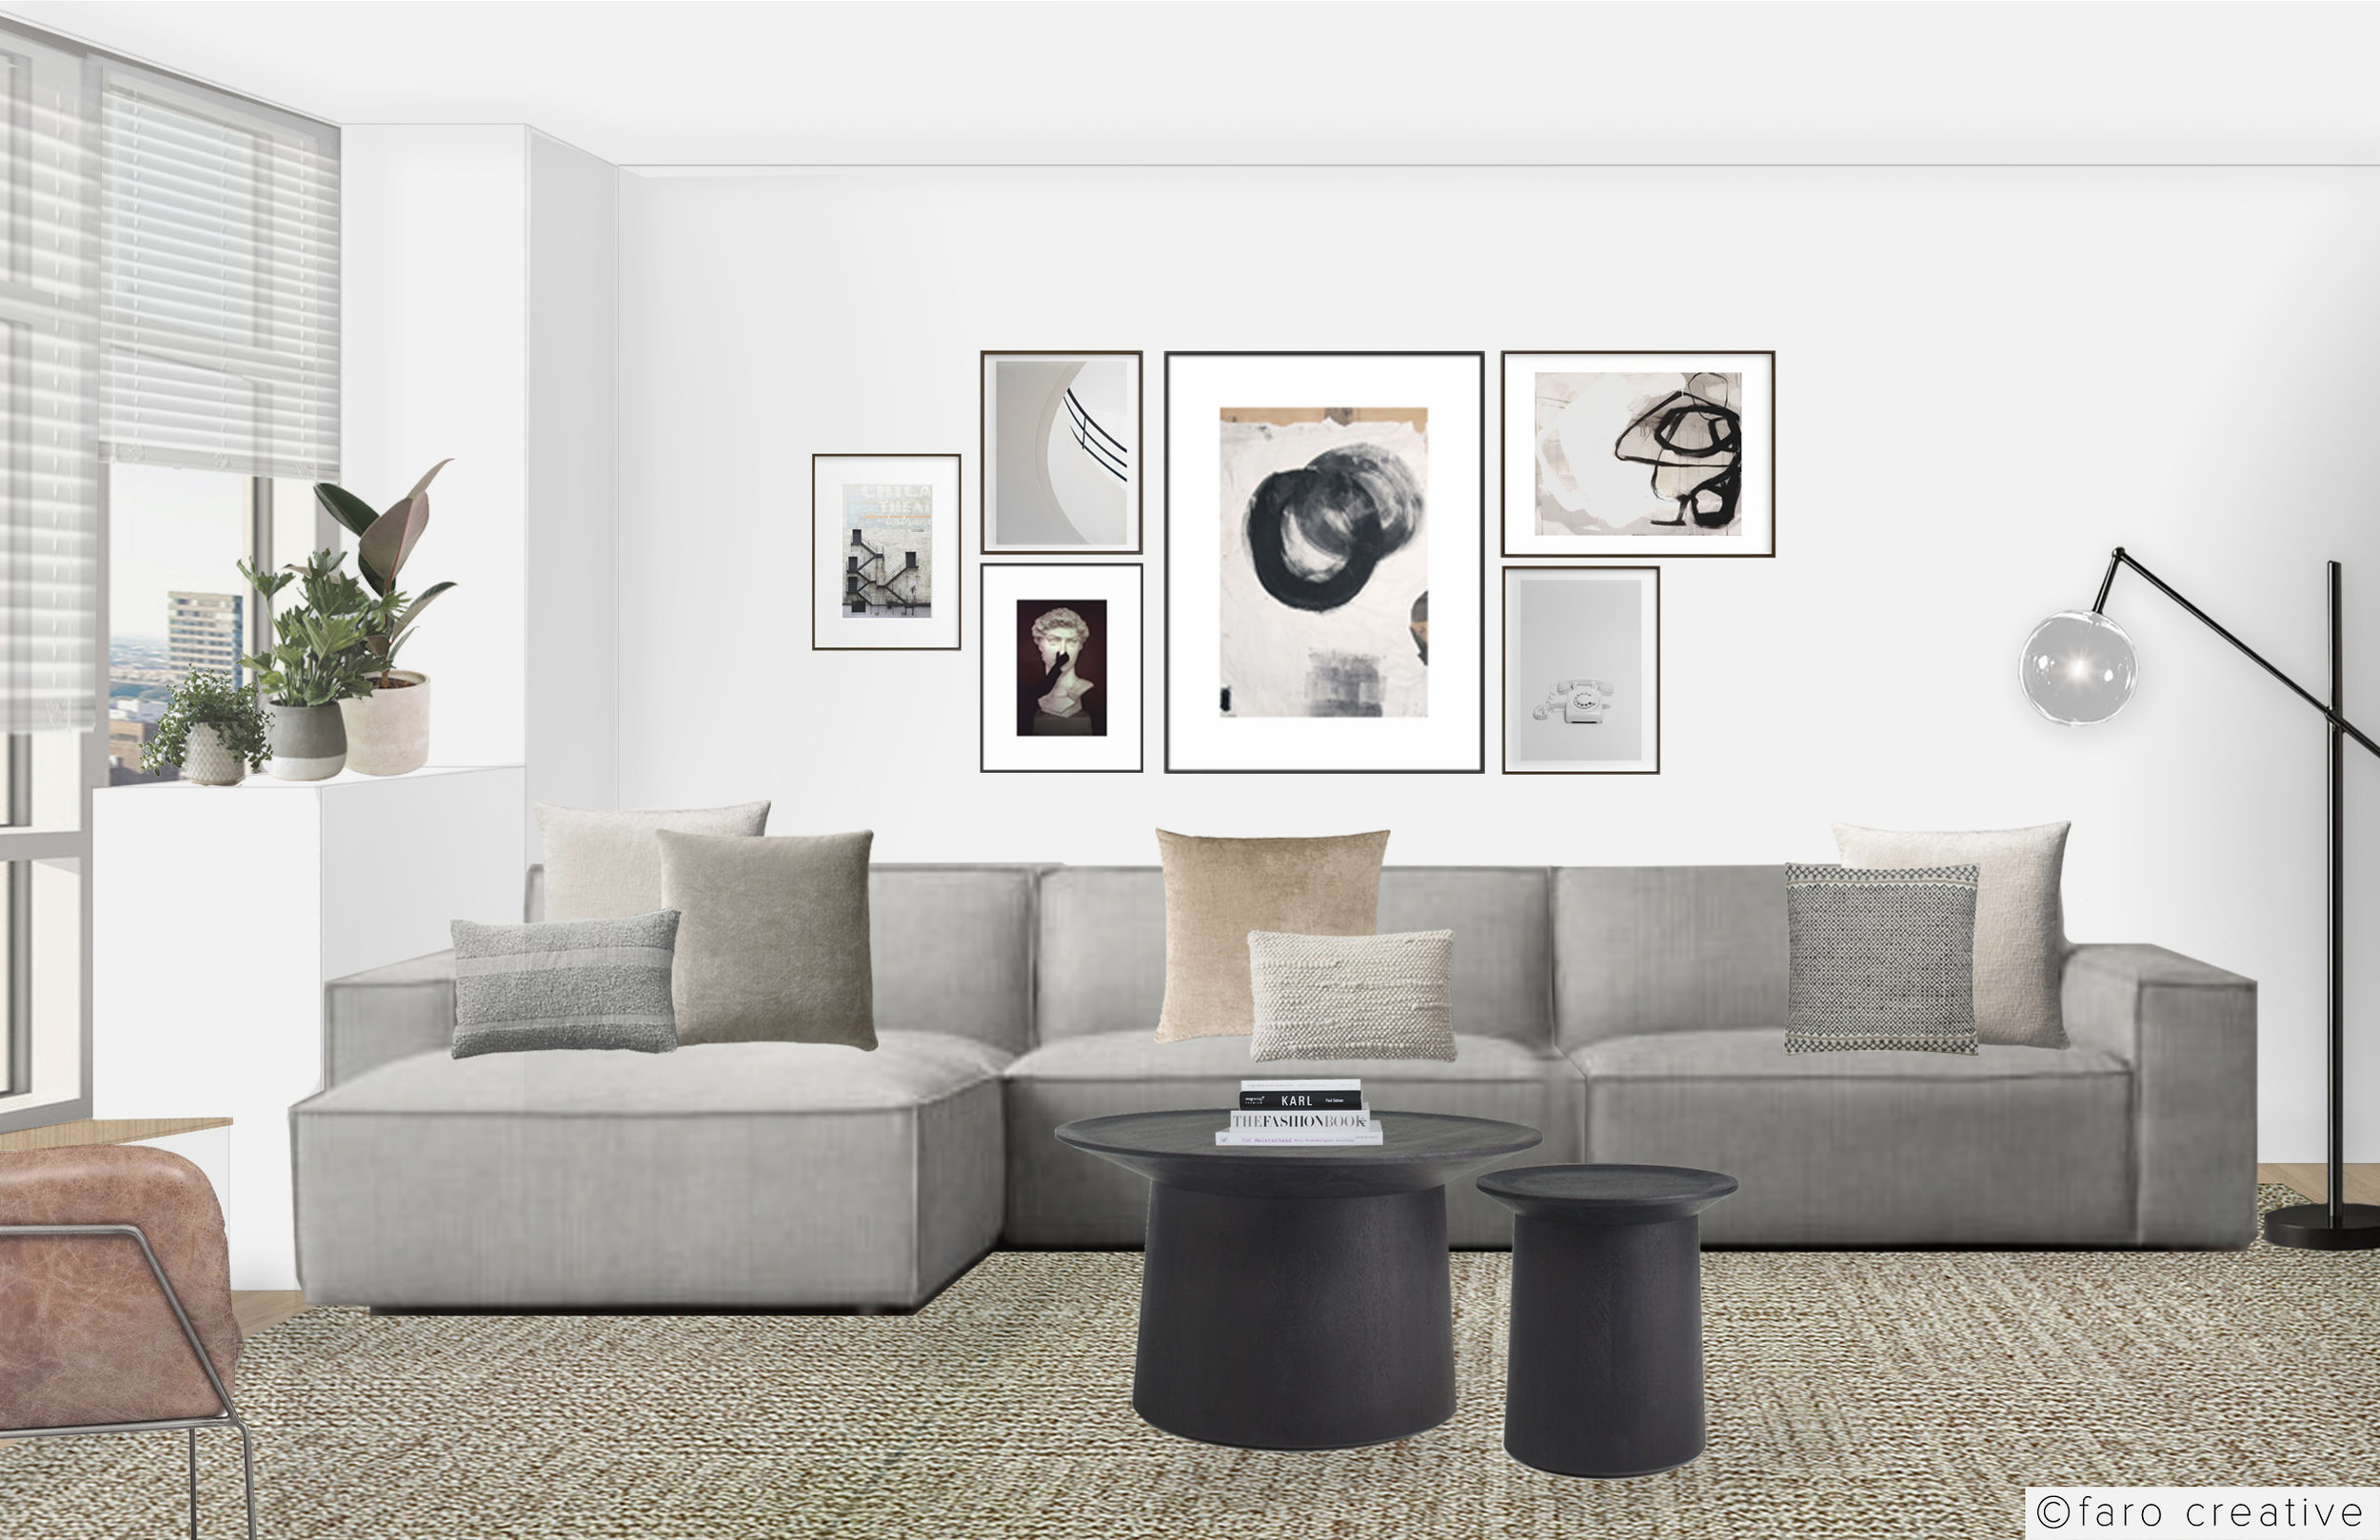 MW Living Room Rendering 1.jpg